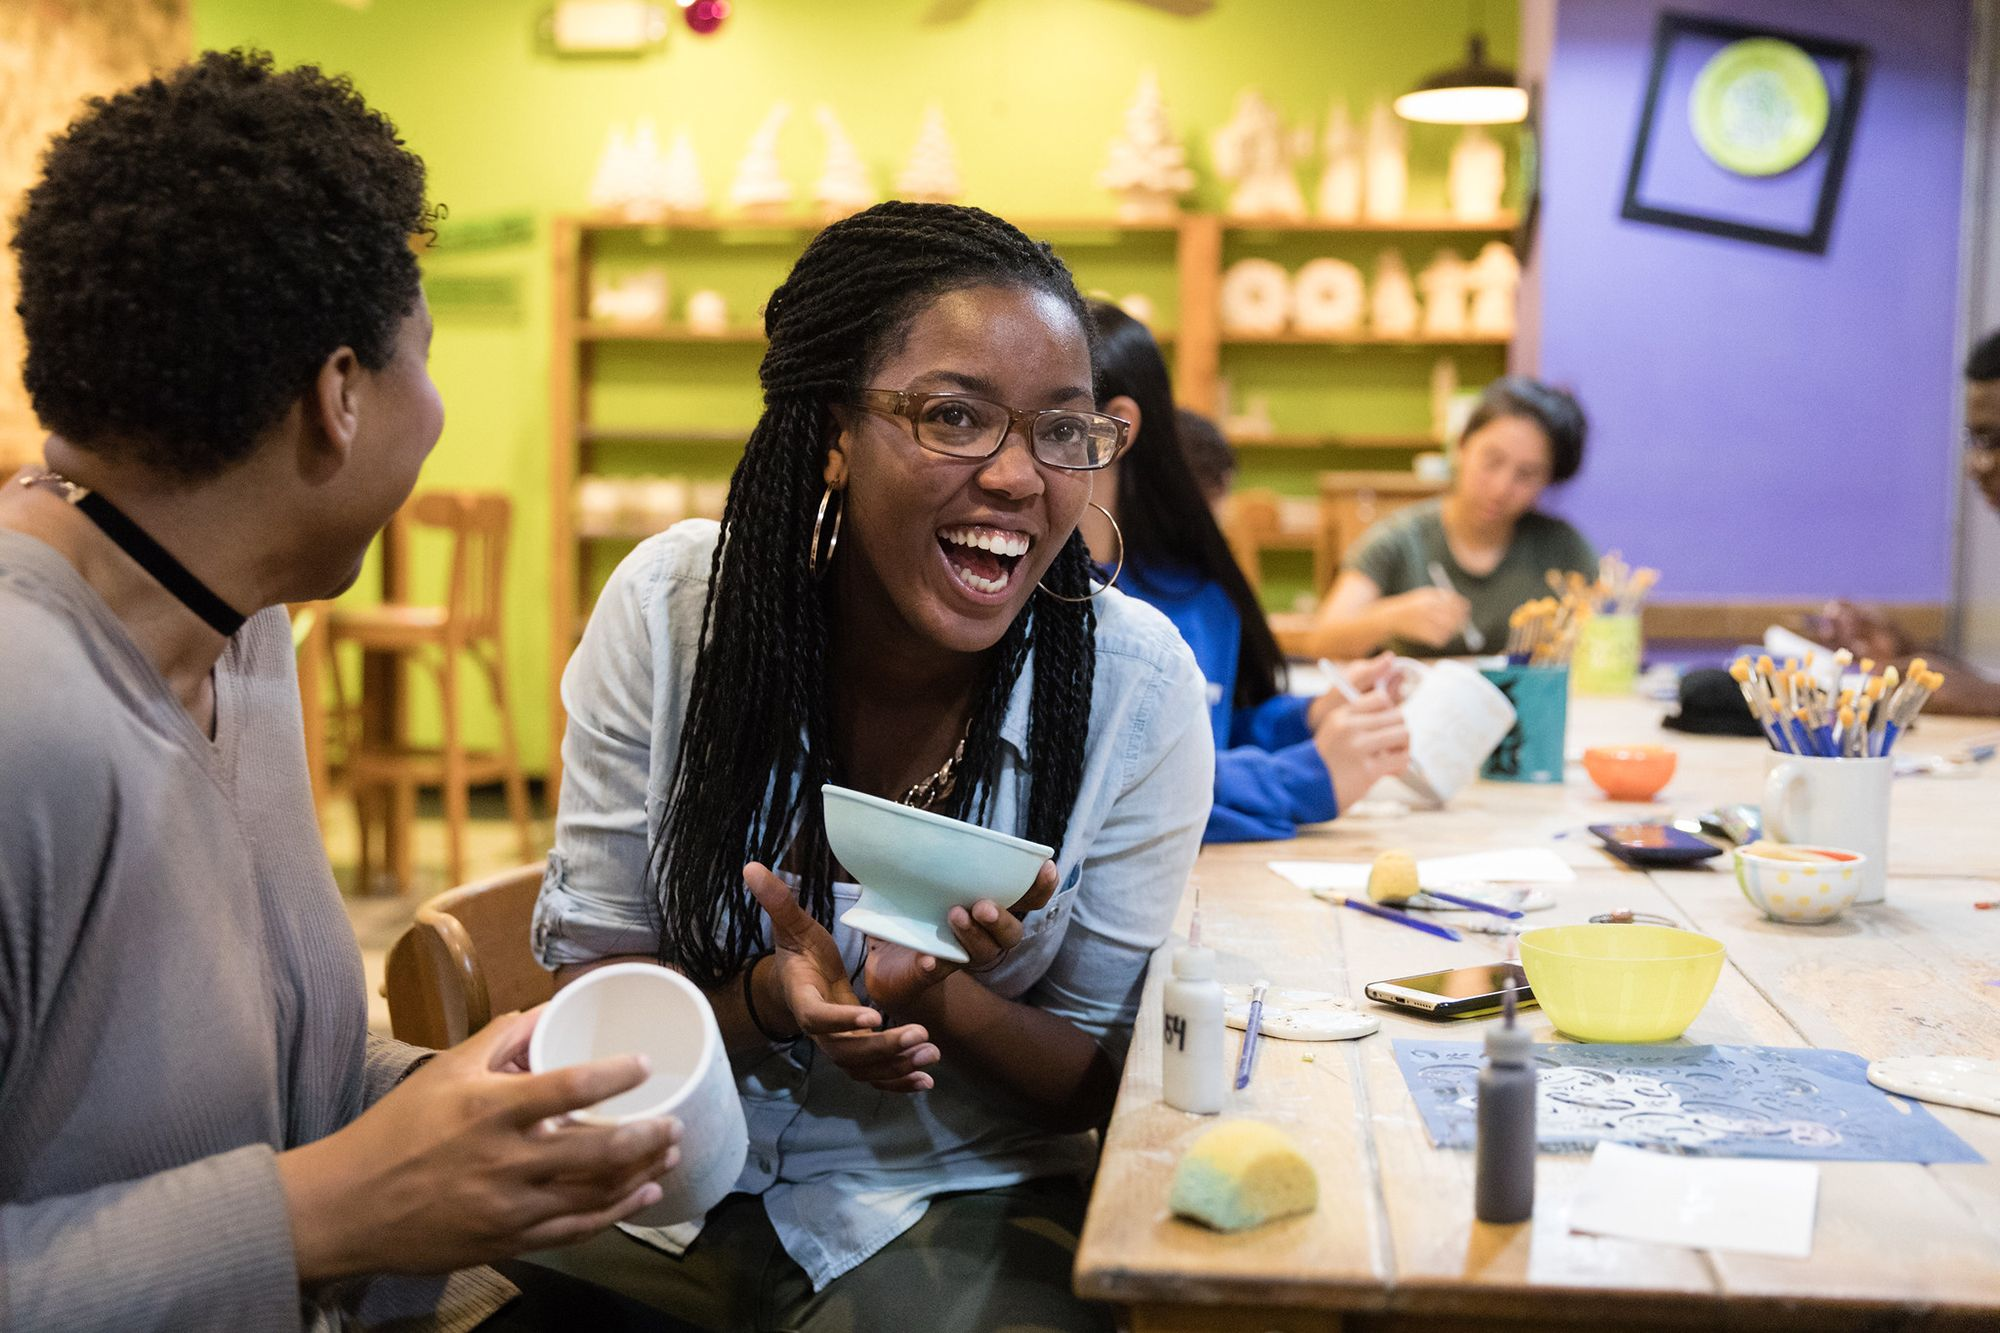 A student laughs with a classmate at a coffee shop.